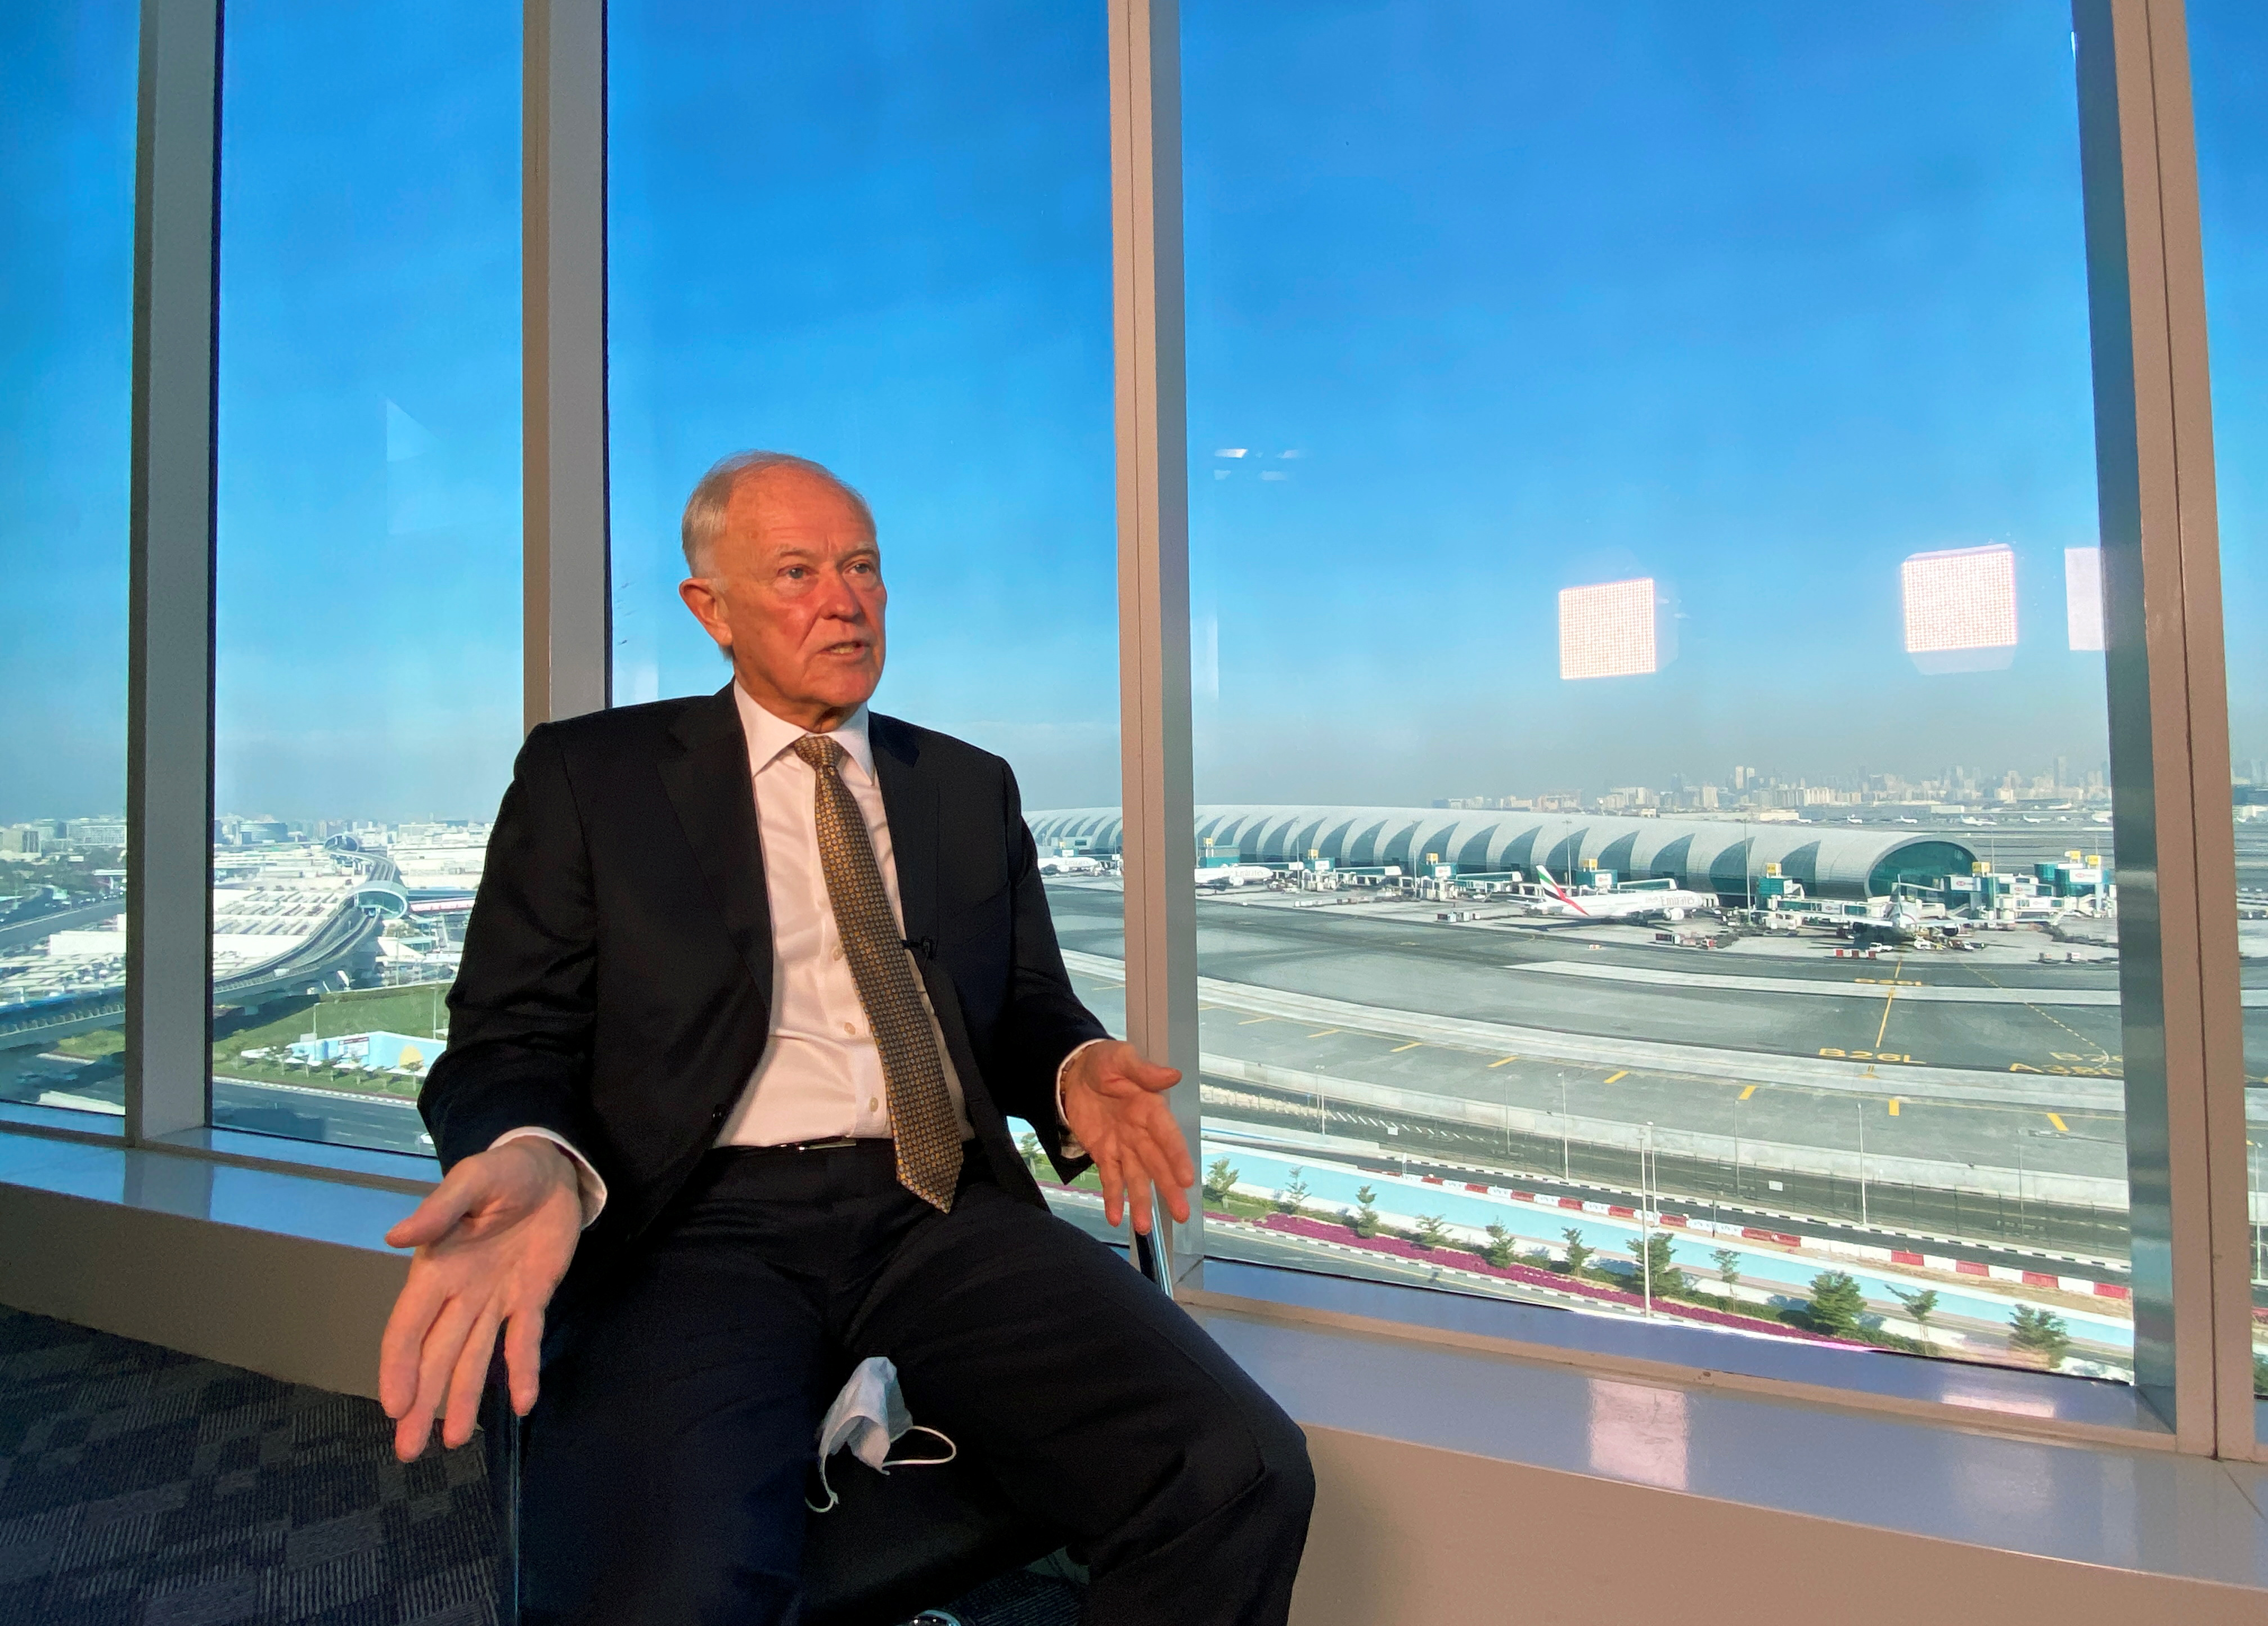 Emirates Airline President Tim Clark gestures as he speaks during an interview with Reuters in Dubai, United Arab Emirates, January 13, 2021. REUTERS/Abdel Hadi Ramahi